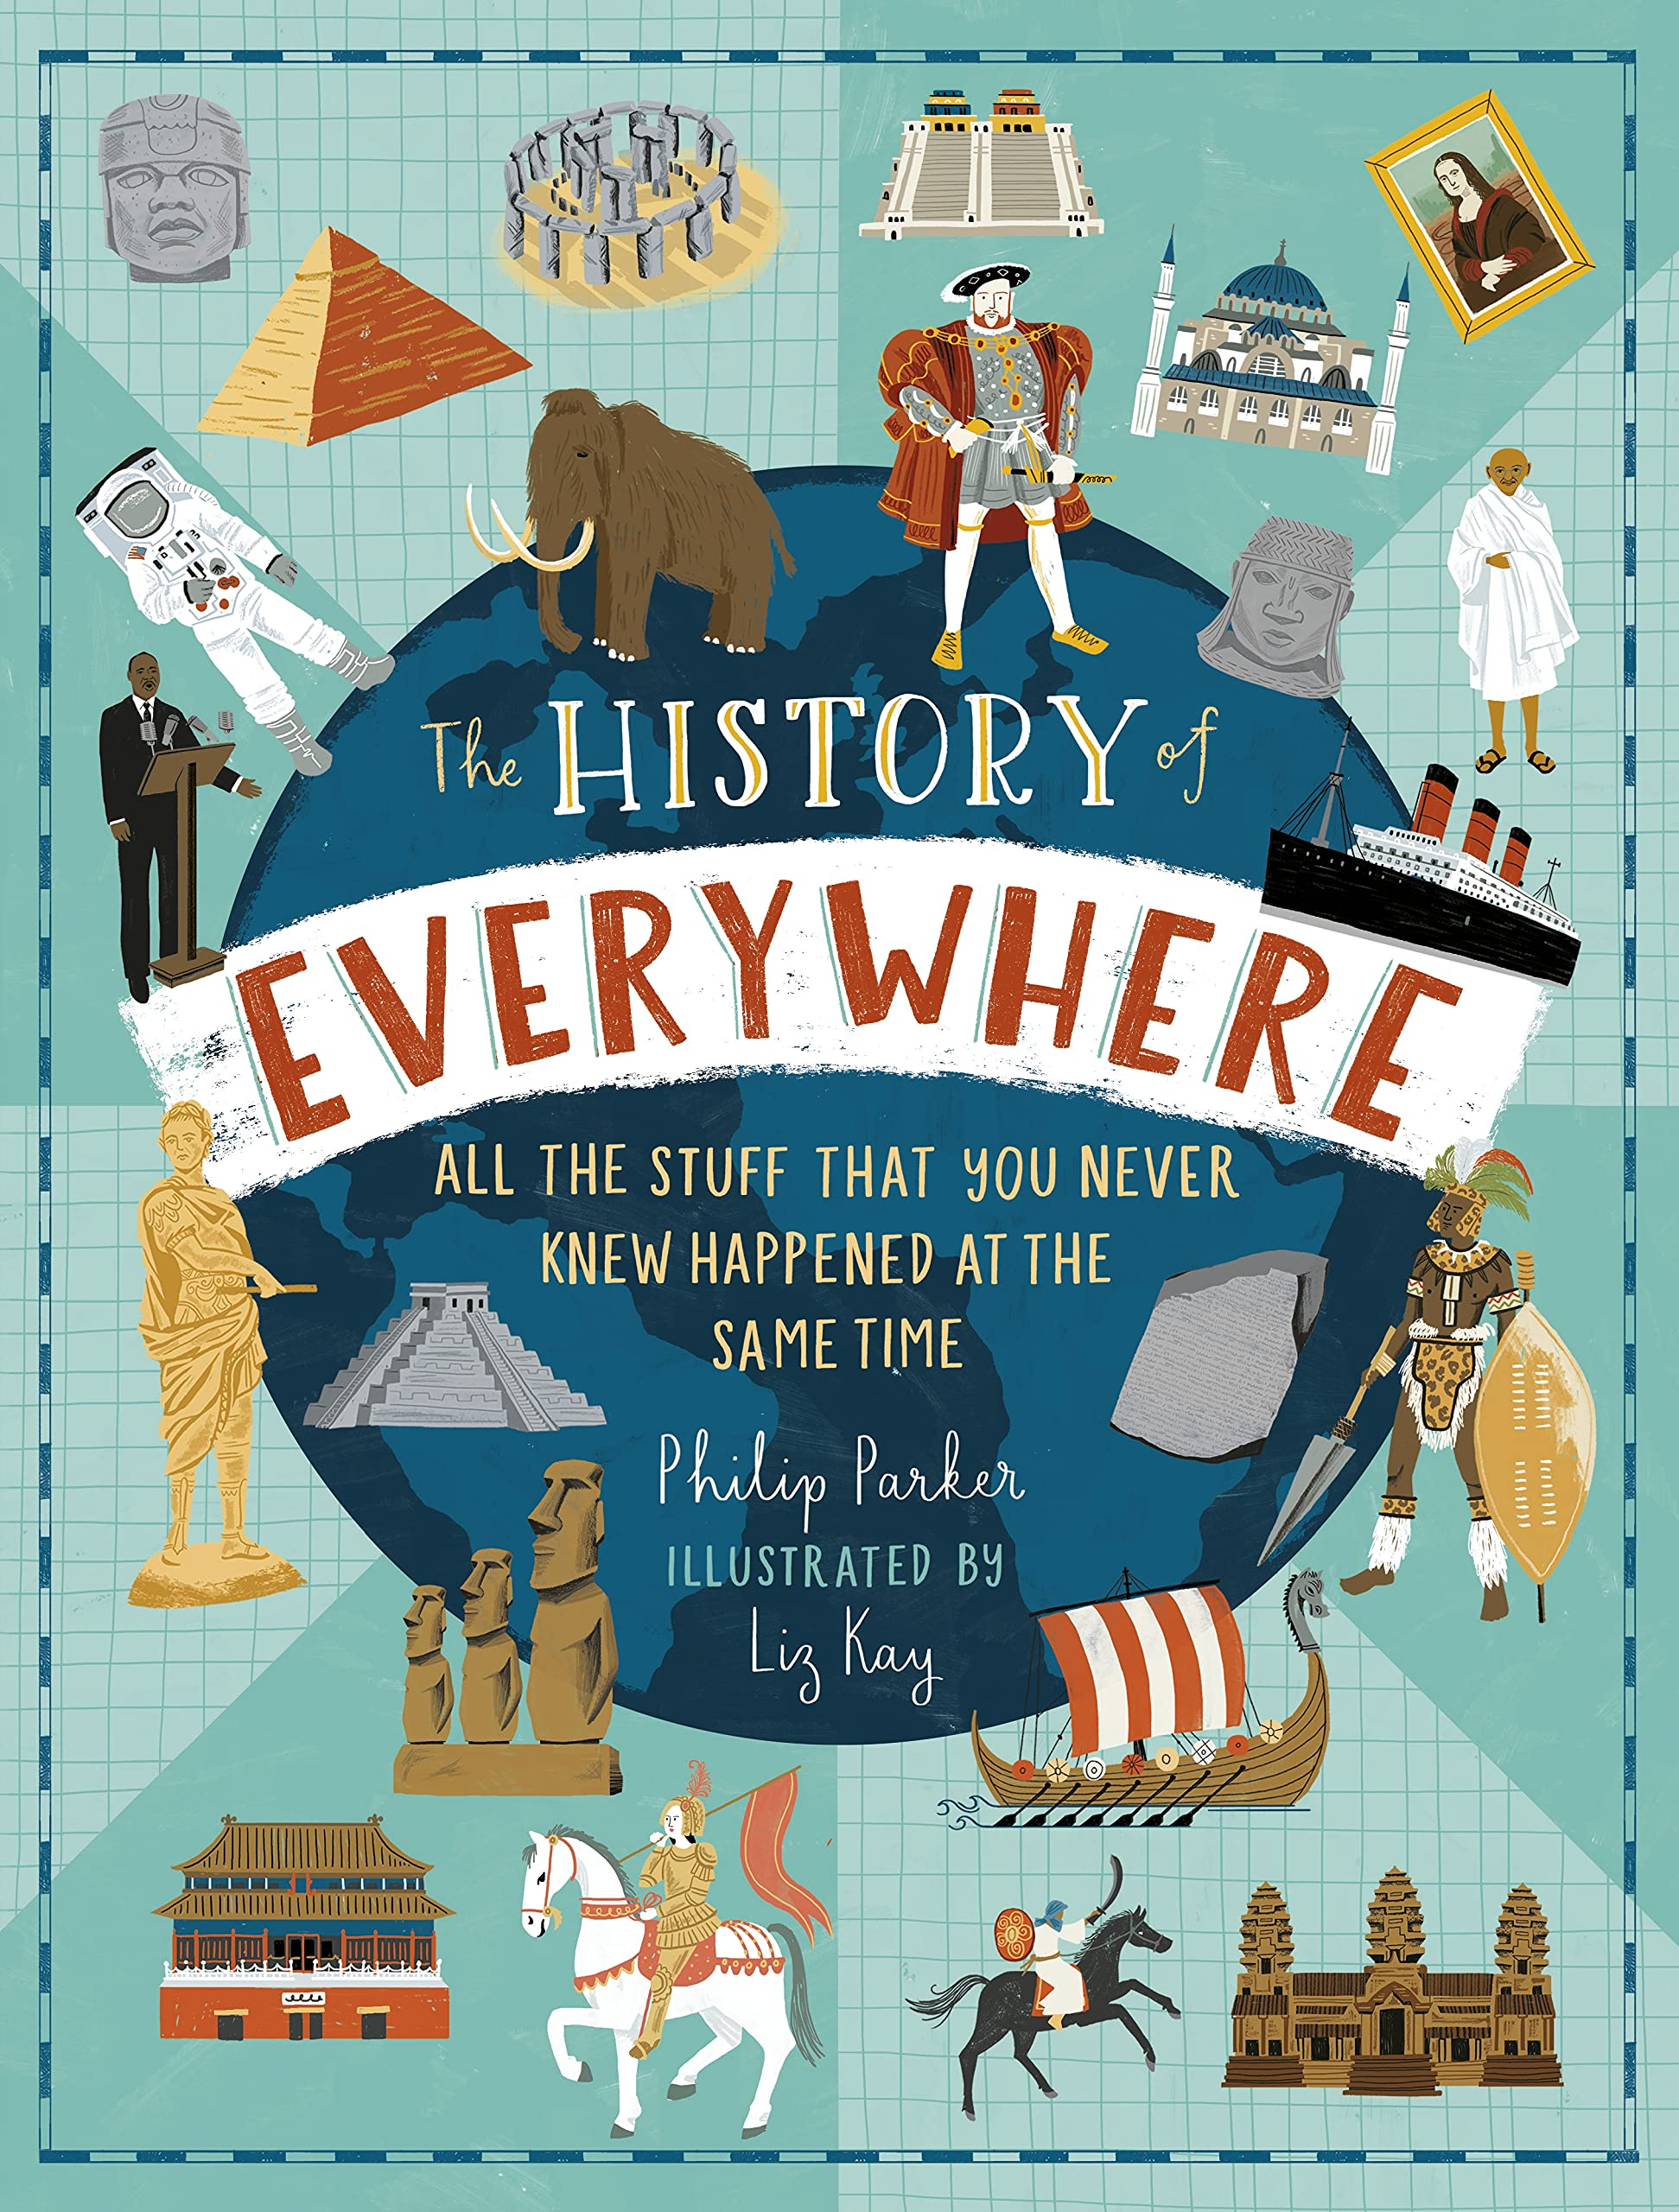 The History of Everywhere